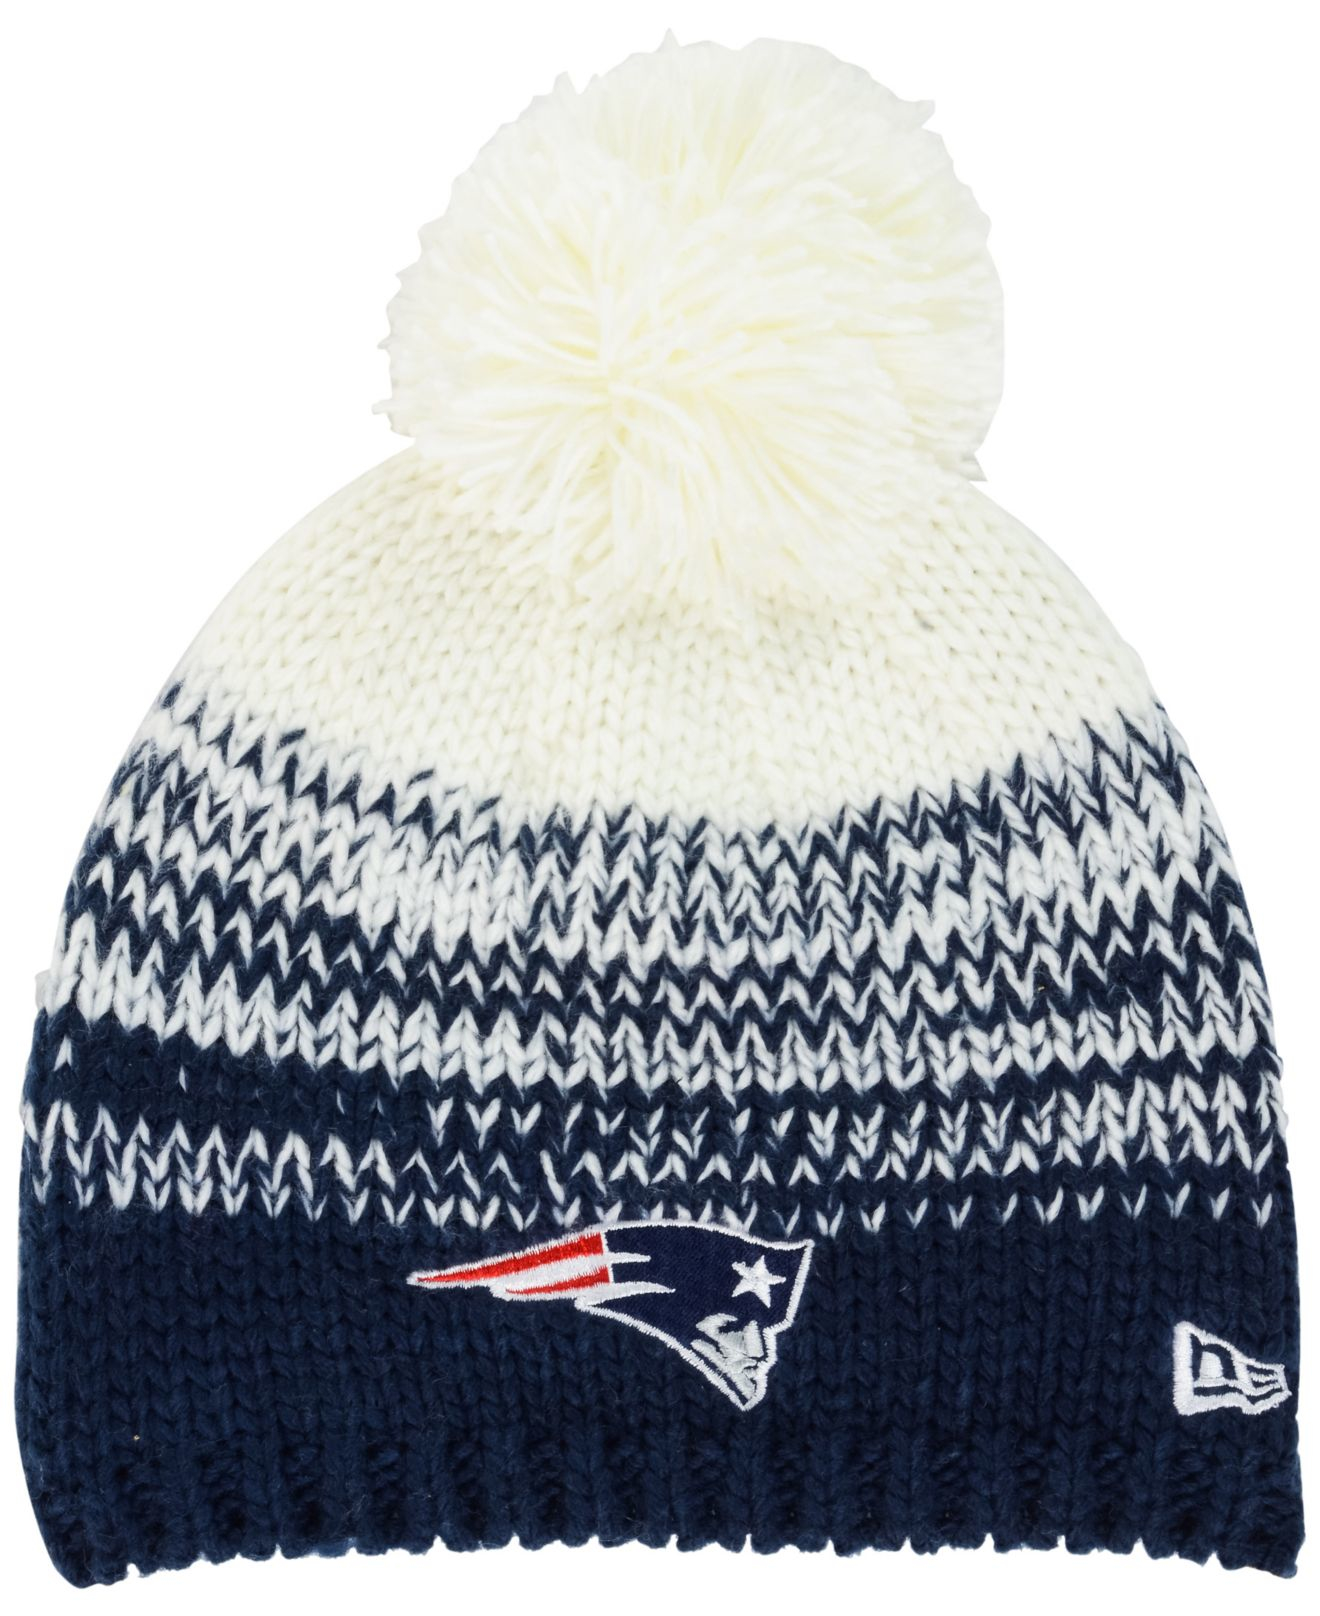 ... amazon lyst ktz womens new england patriots polar dust knit hat in  white 1920d 3544d 678d09c00